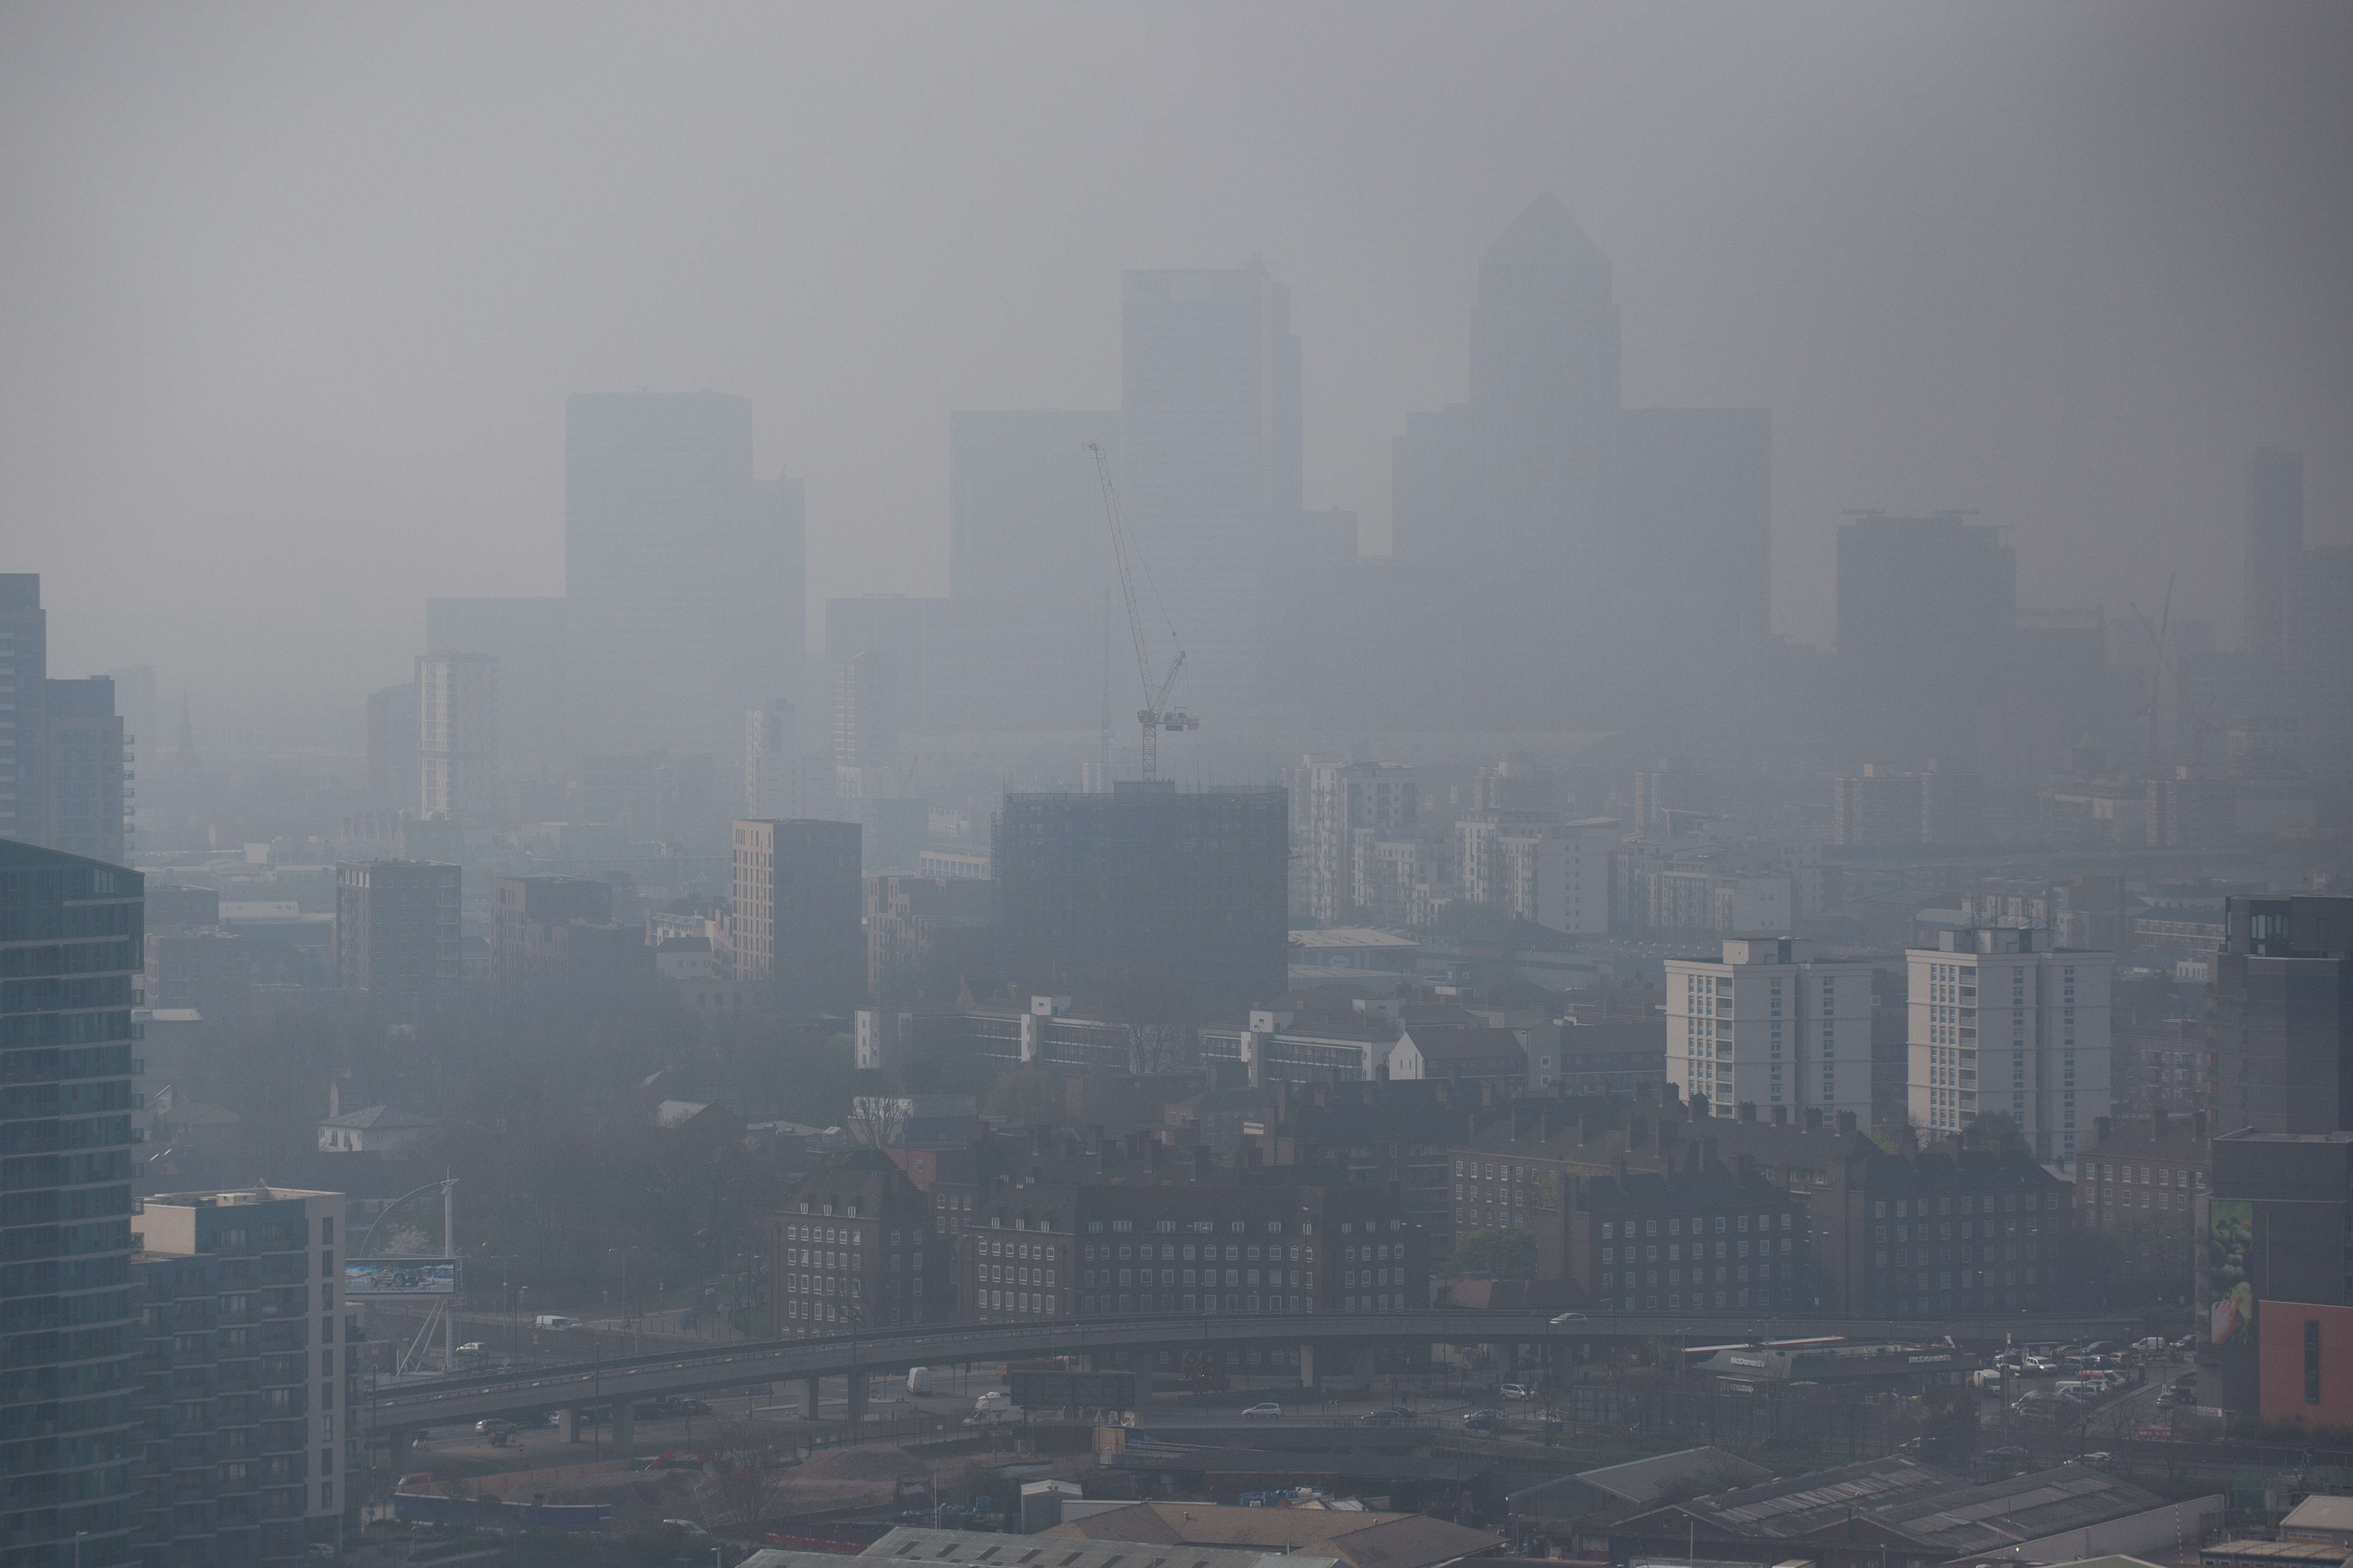 Air pollution hangs in the air lowering